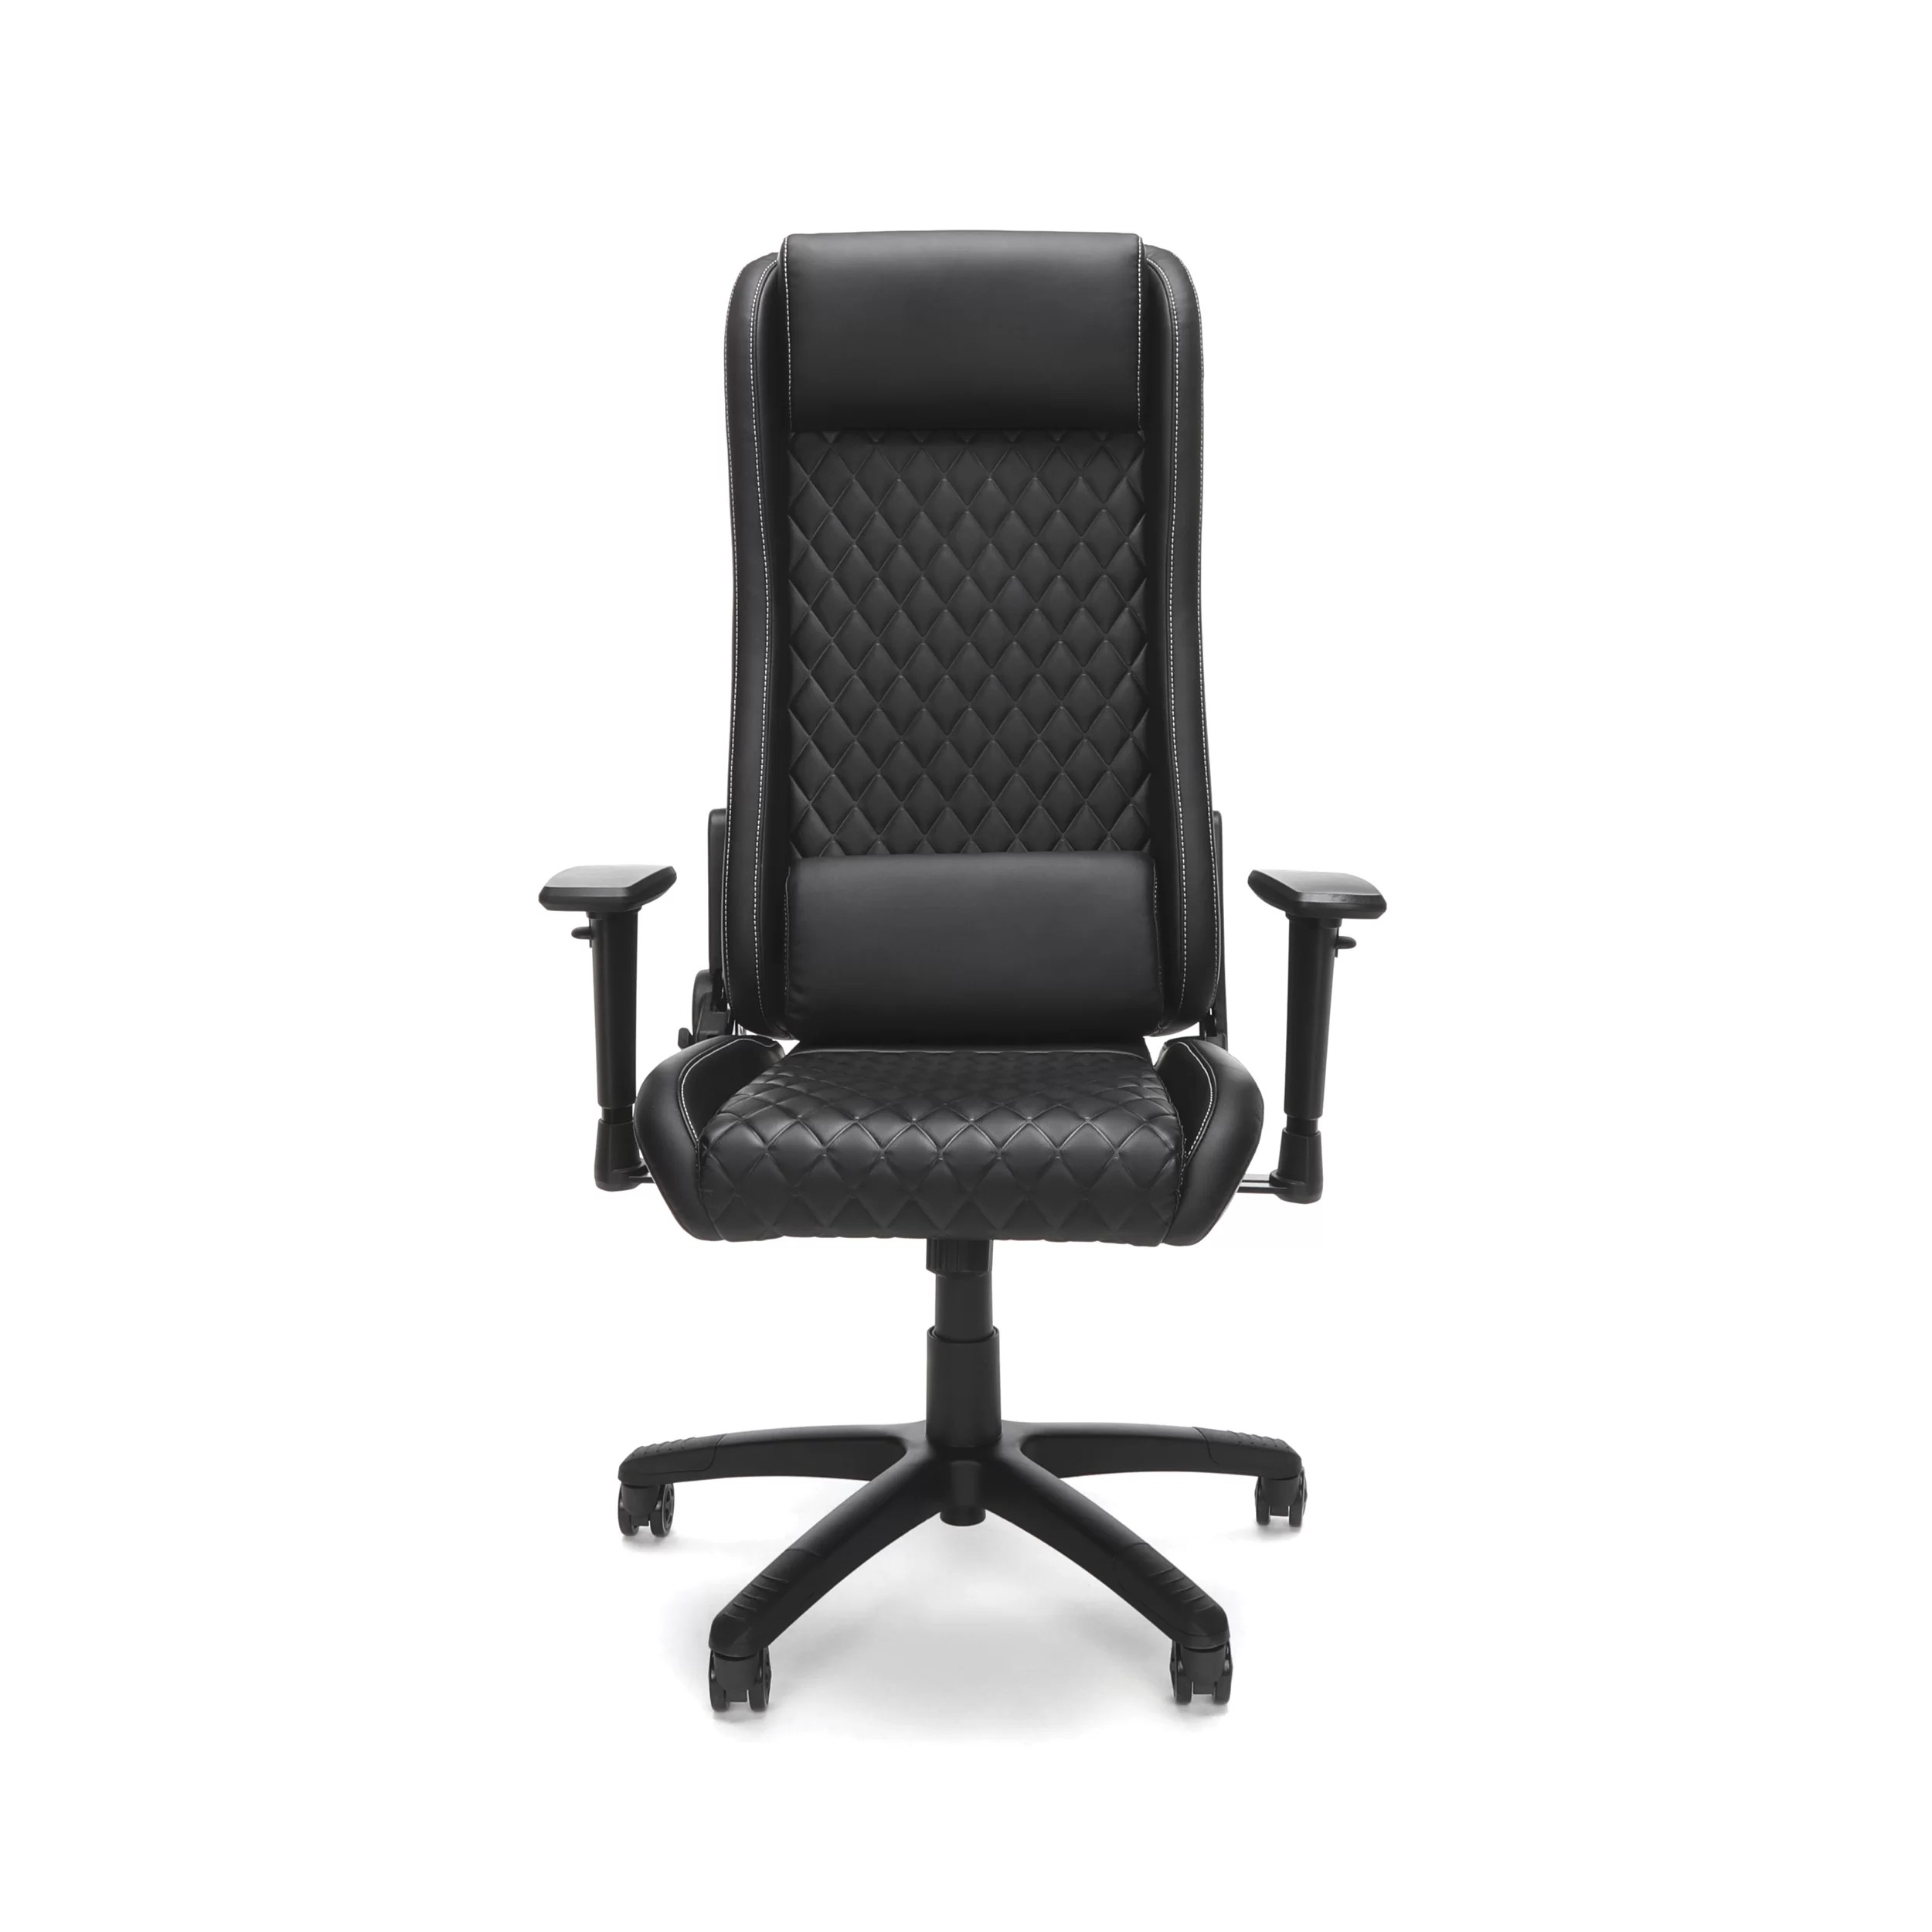 gaming chairs clear inflatable bubble chair respawn executive style wayfair